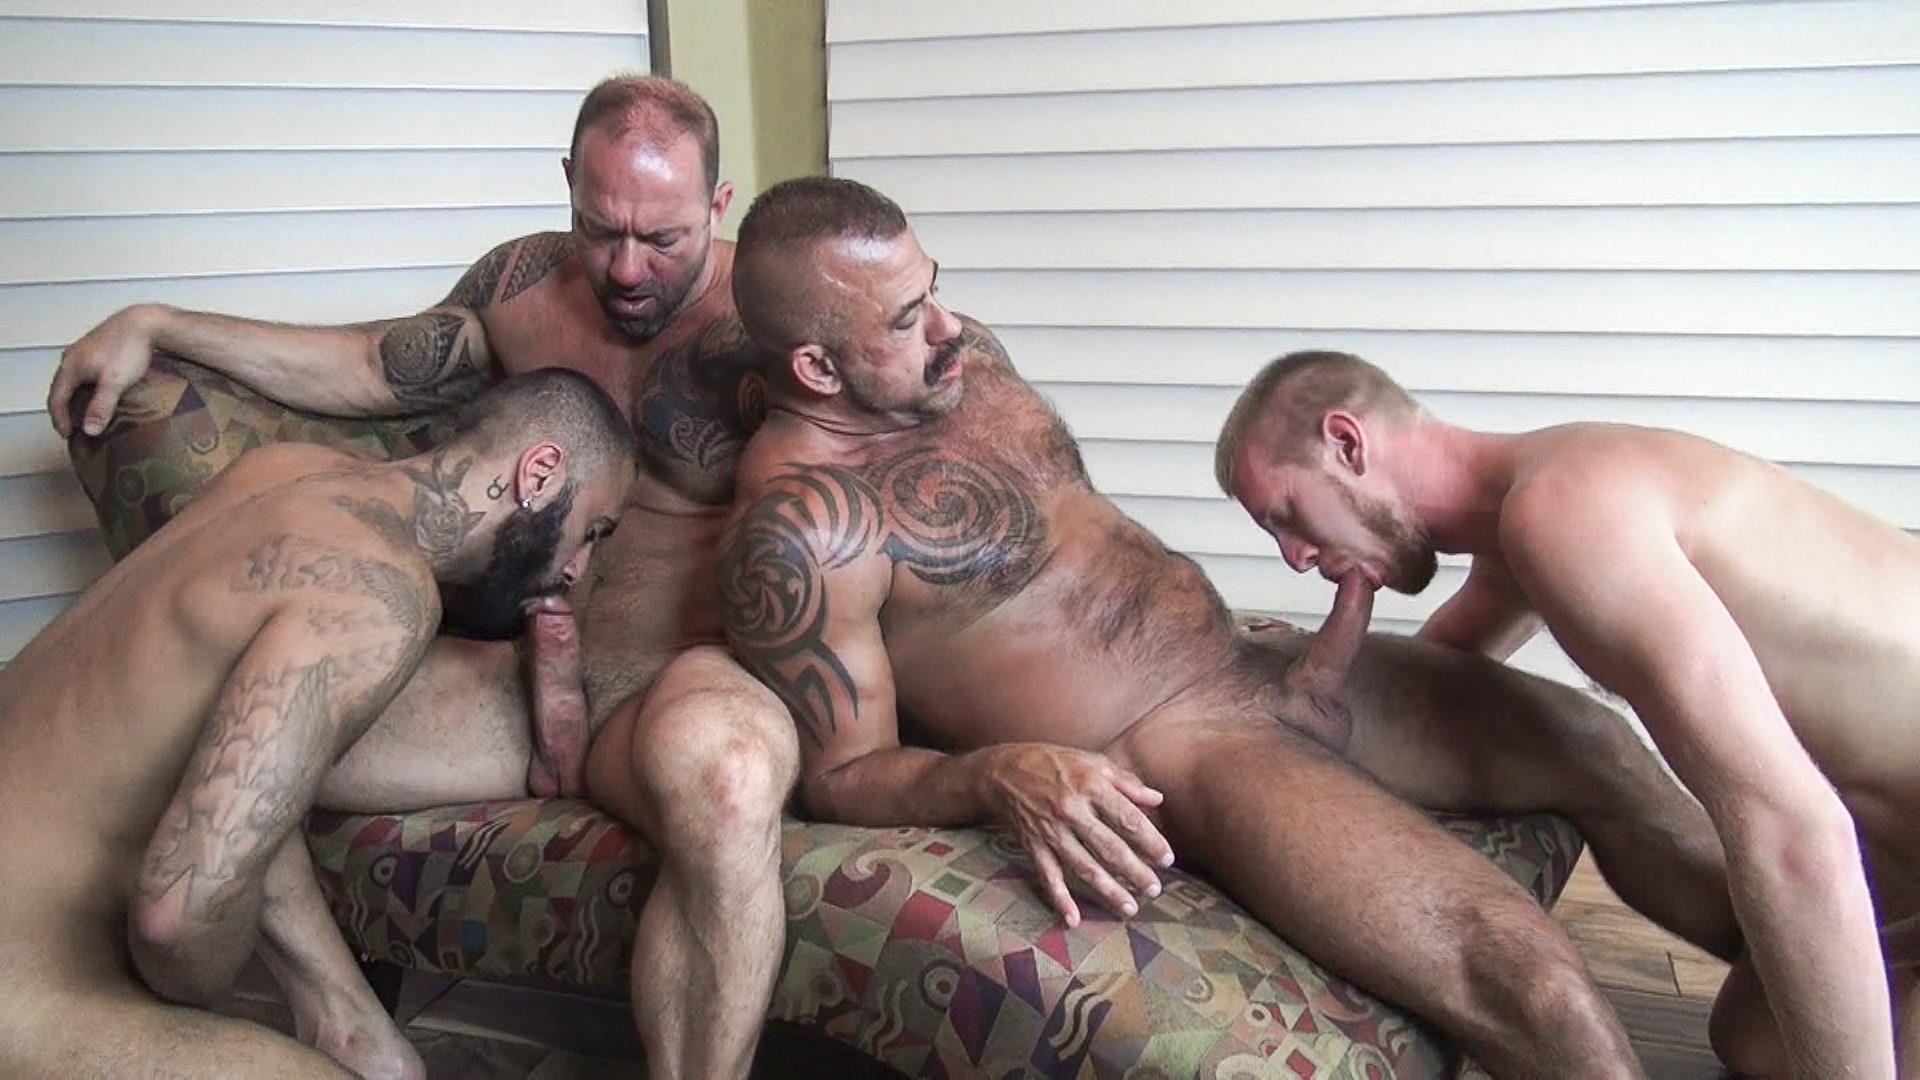 Raw-Fuck-Club-Vic-Rocco-and-Rikk-York-and-Billy-Warren-and-Job-Galt-Bareback-Daddy-Amateur-Gay-Porn-10 Four Hairy Muscle Daddies In A Bareback Fuck Fest Orgy